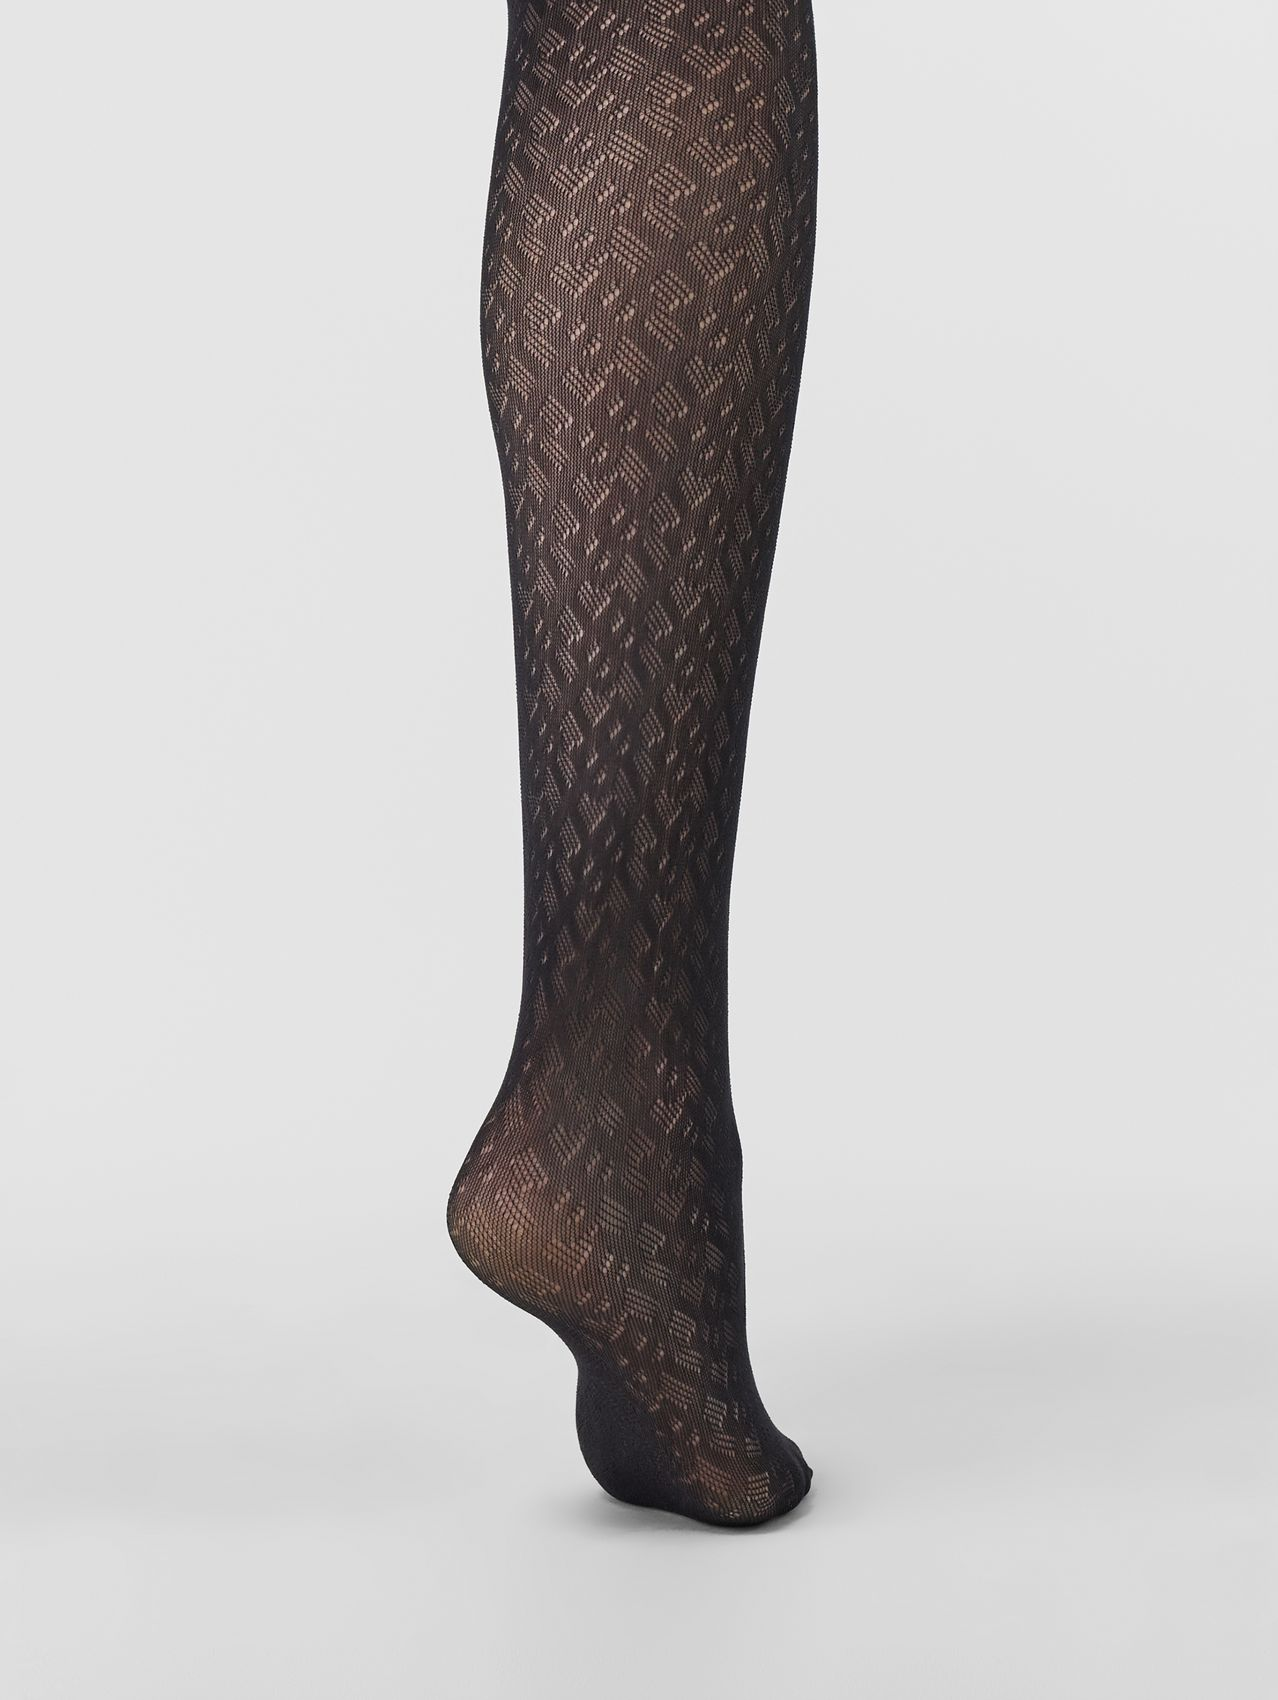 Monogram Motif Tights in Black